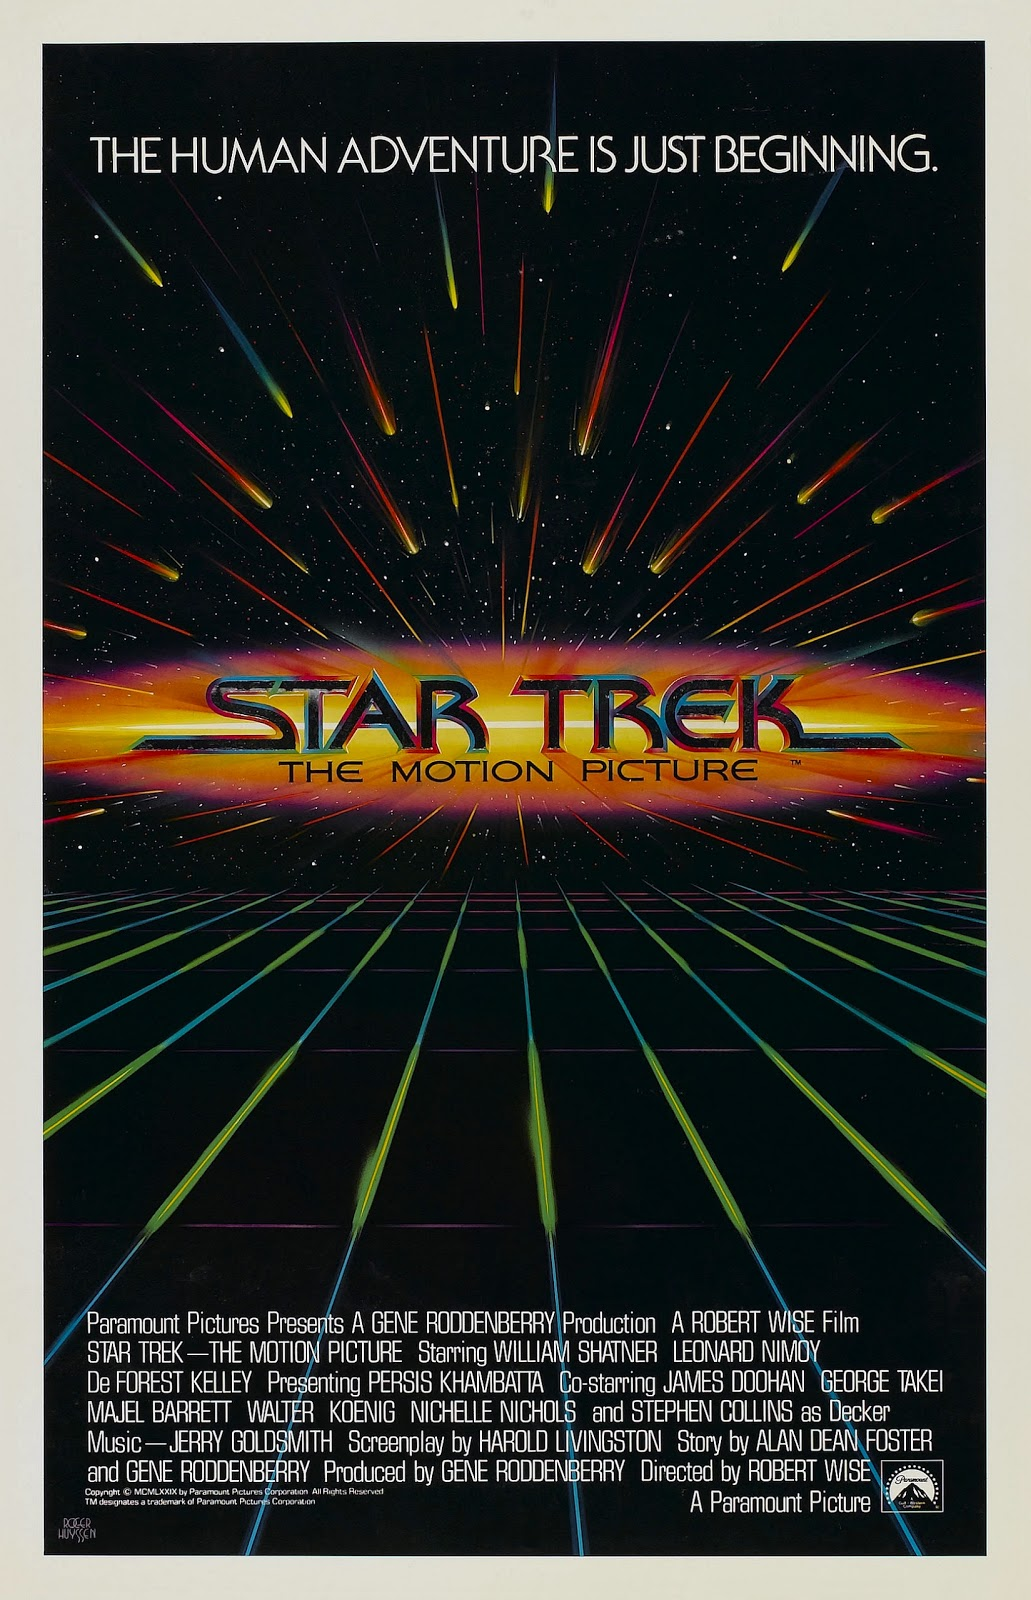 the geeky nerfherder movie poster art star trek the motion picture 1979. Black Bedroom Furniture Sets. Home Design Ideas